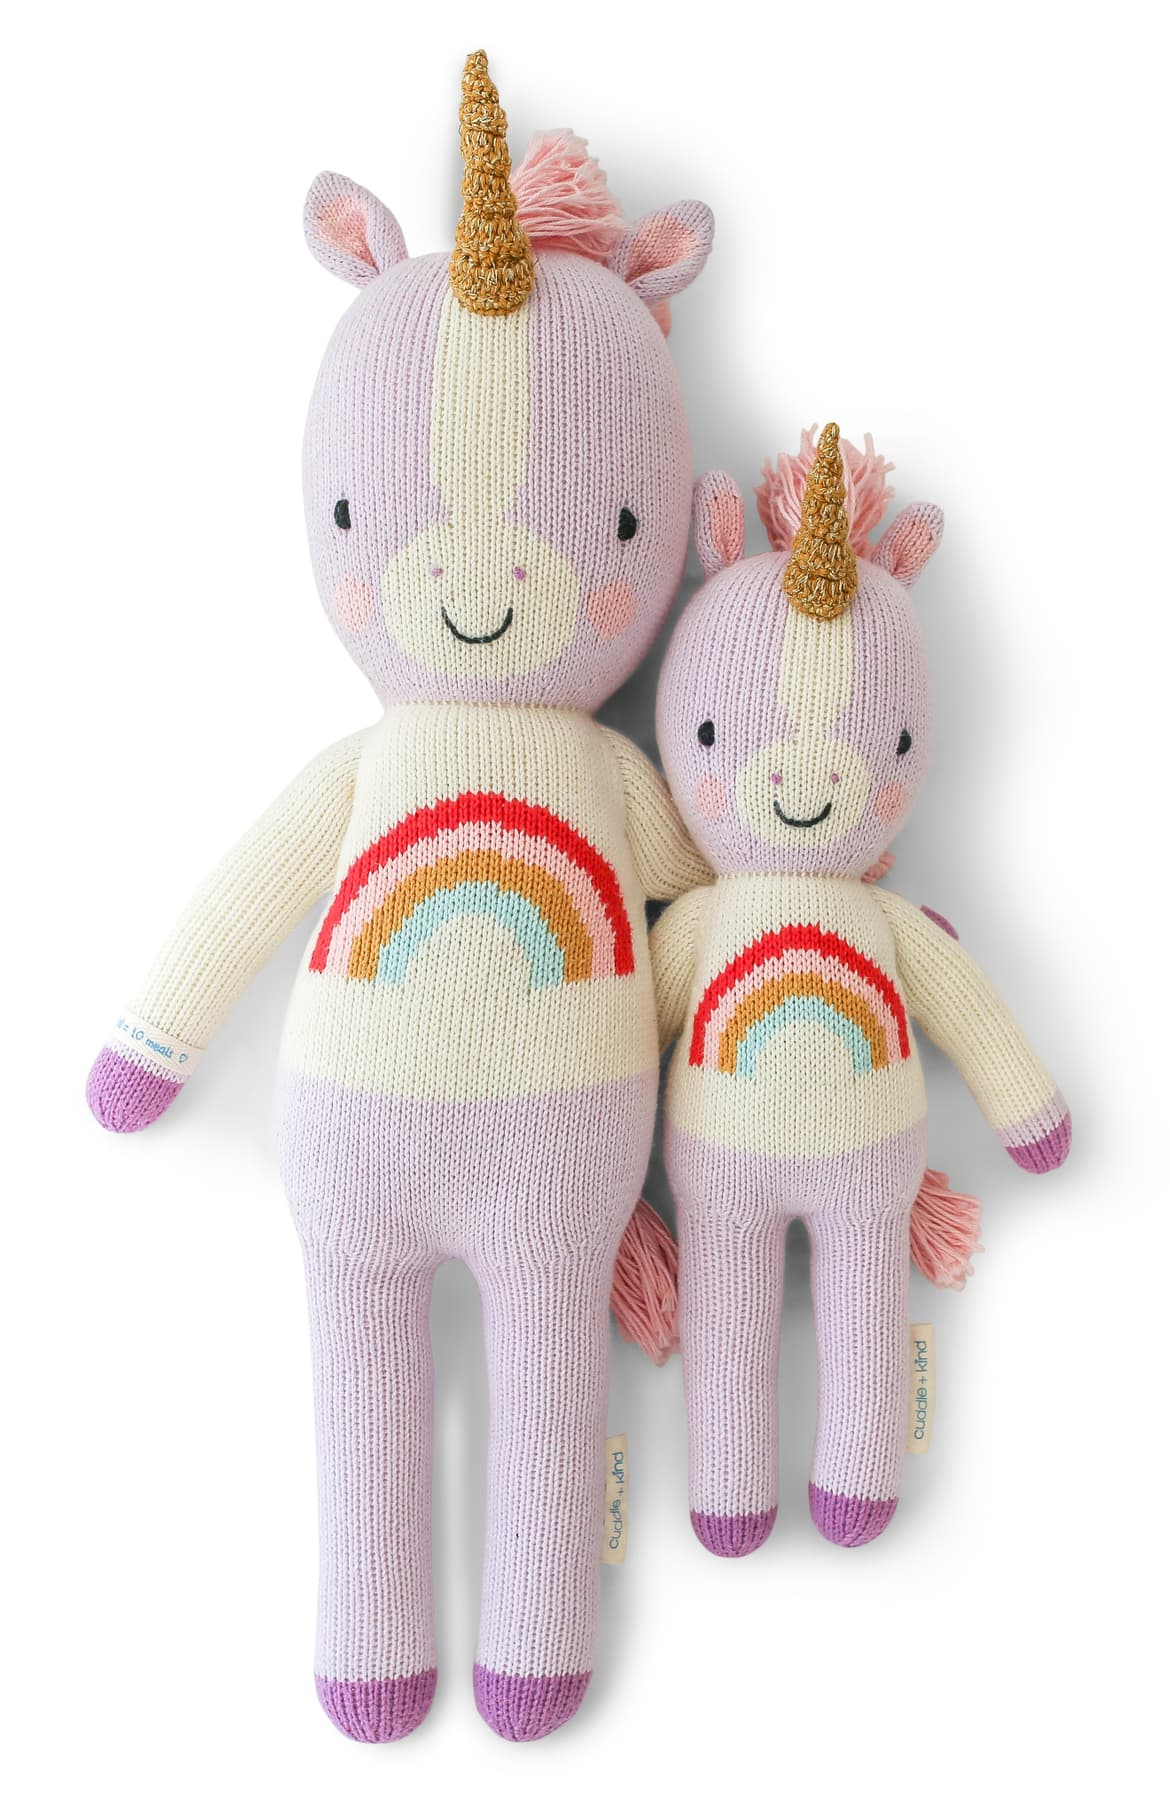 Dreams or play, everything will be more magical for your darling whenever this cuddly unicorn hand knit from Peruvian cotton is around. Starting Price $55.{ }Shop it{ }(Image: Nordstrom){ }